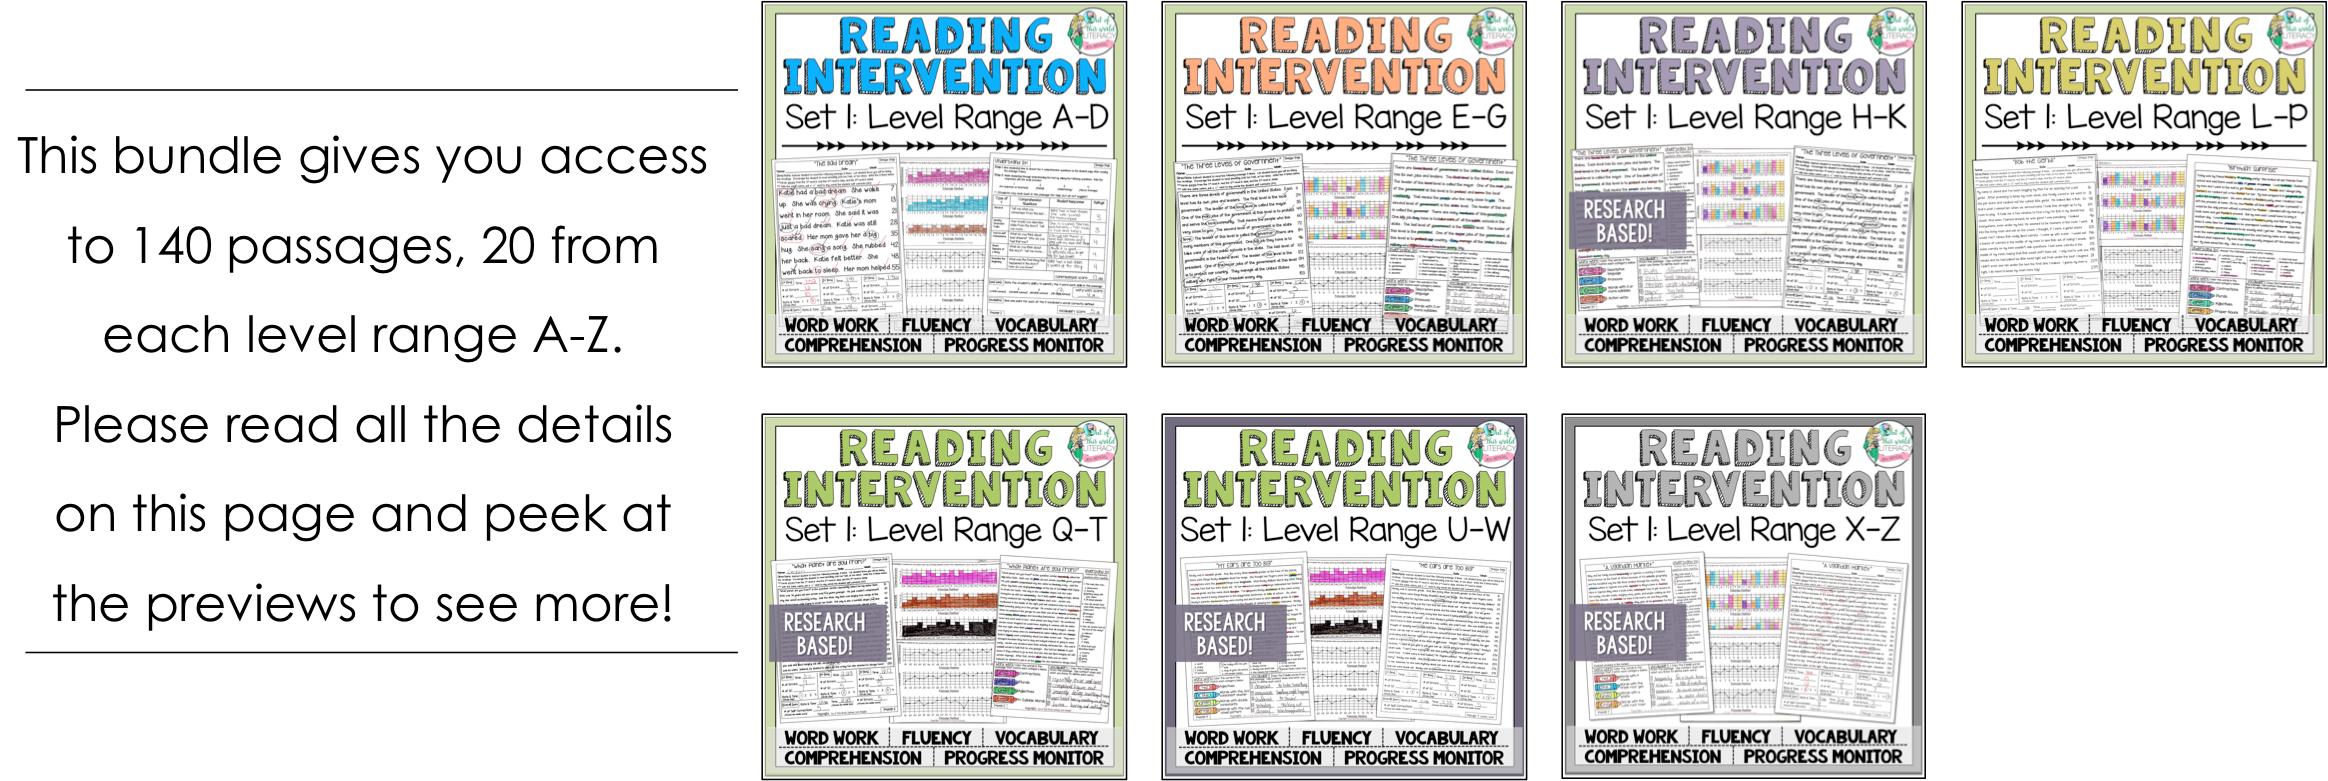 Reading intervention program set one bundle jen bengel each passage is not individually leveled however they range from fountas and pinnell levels a d e g h k l p q t u w and x z geenschuldenfo Choice Image